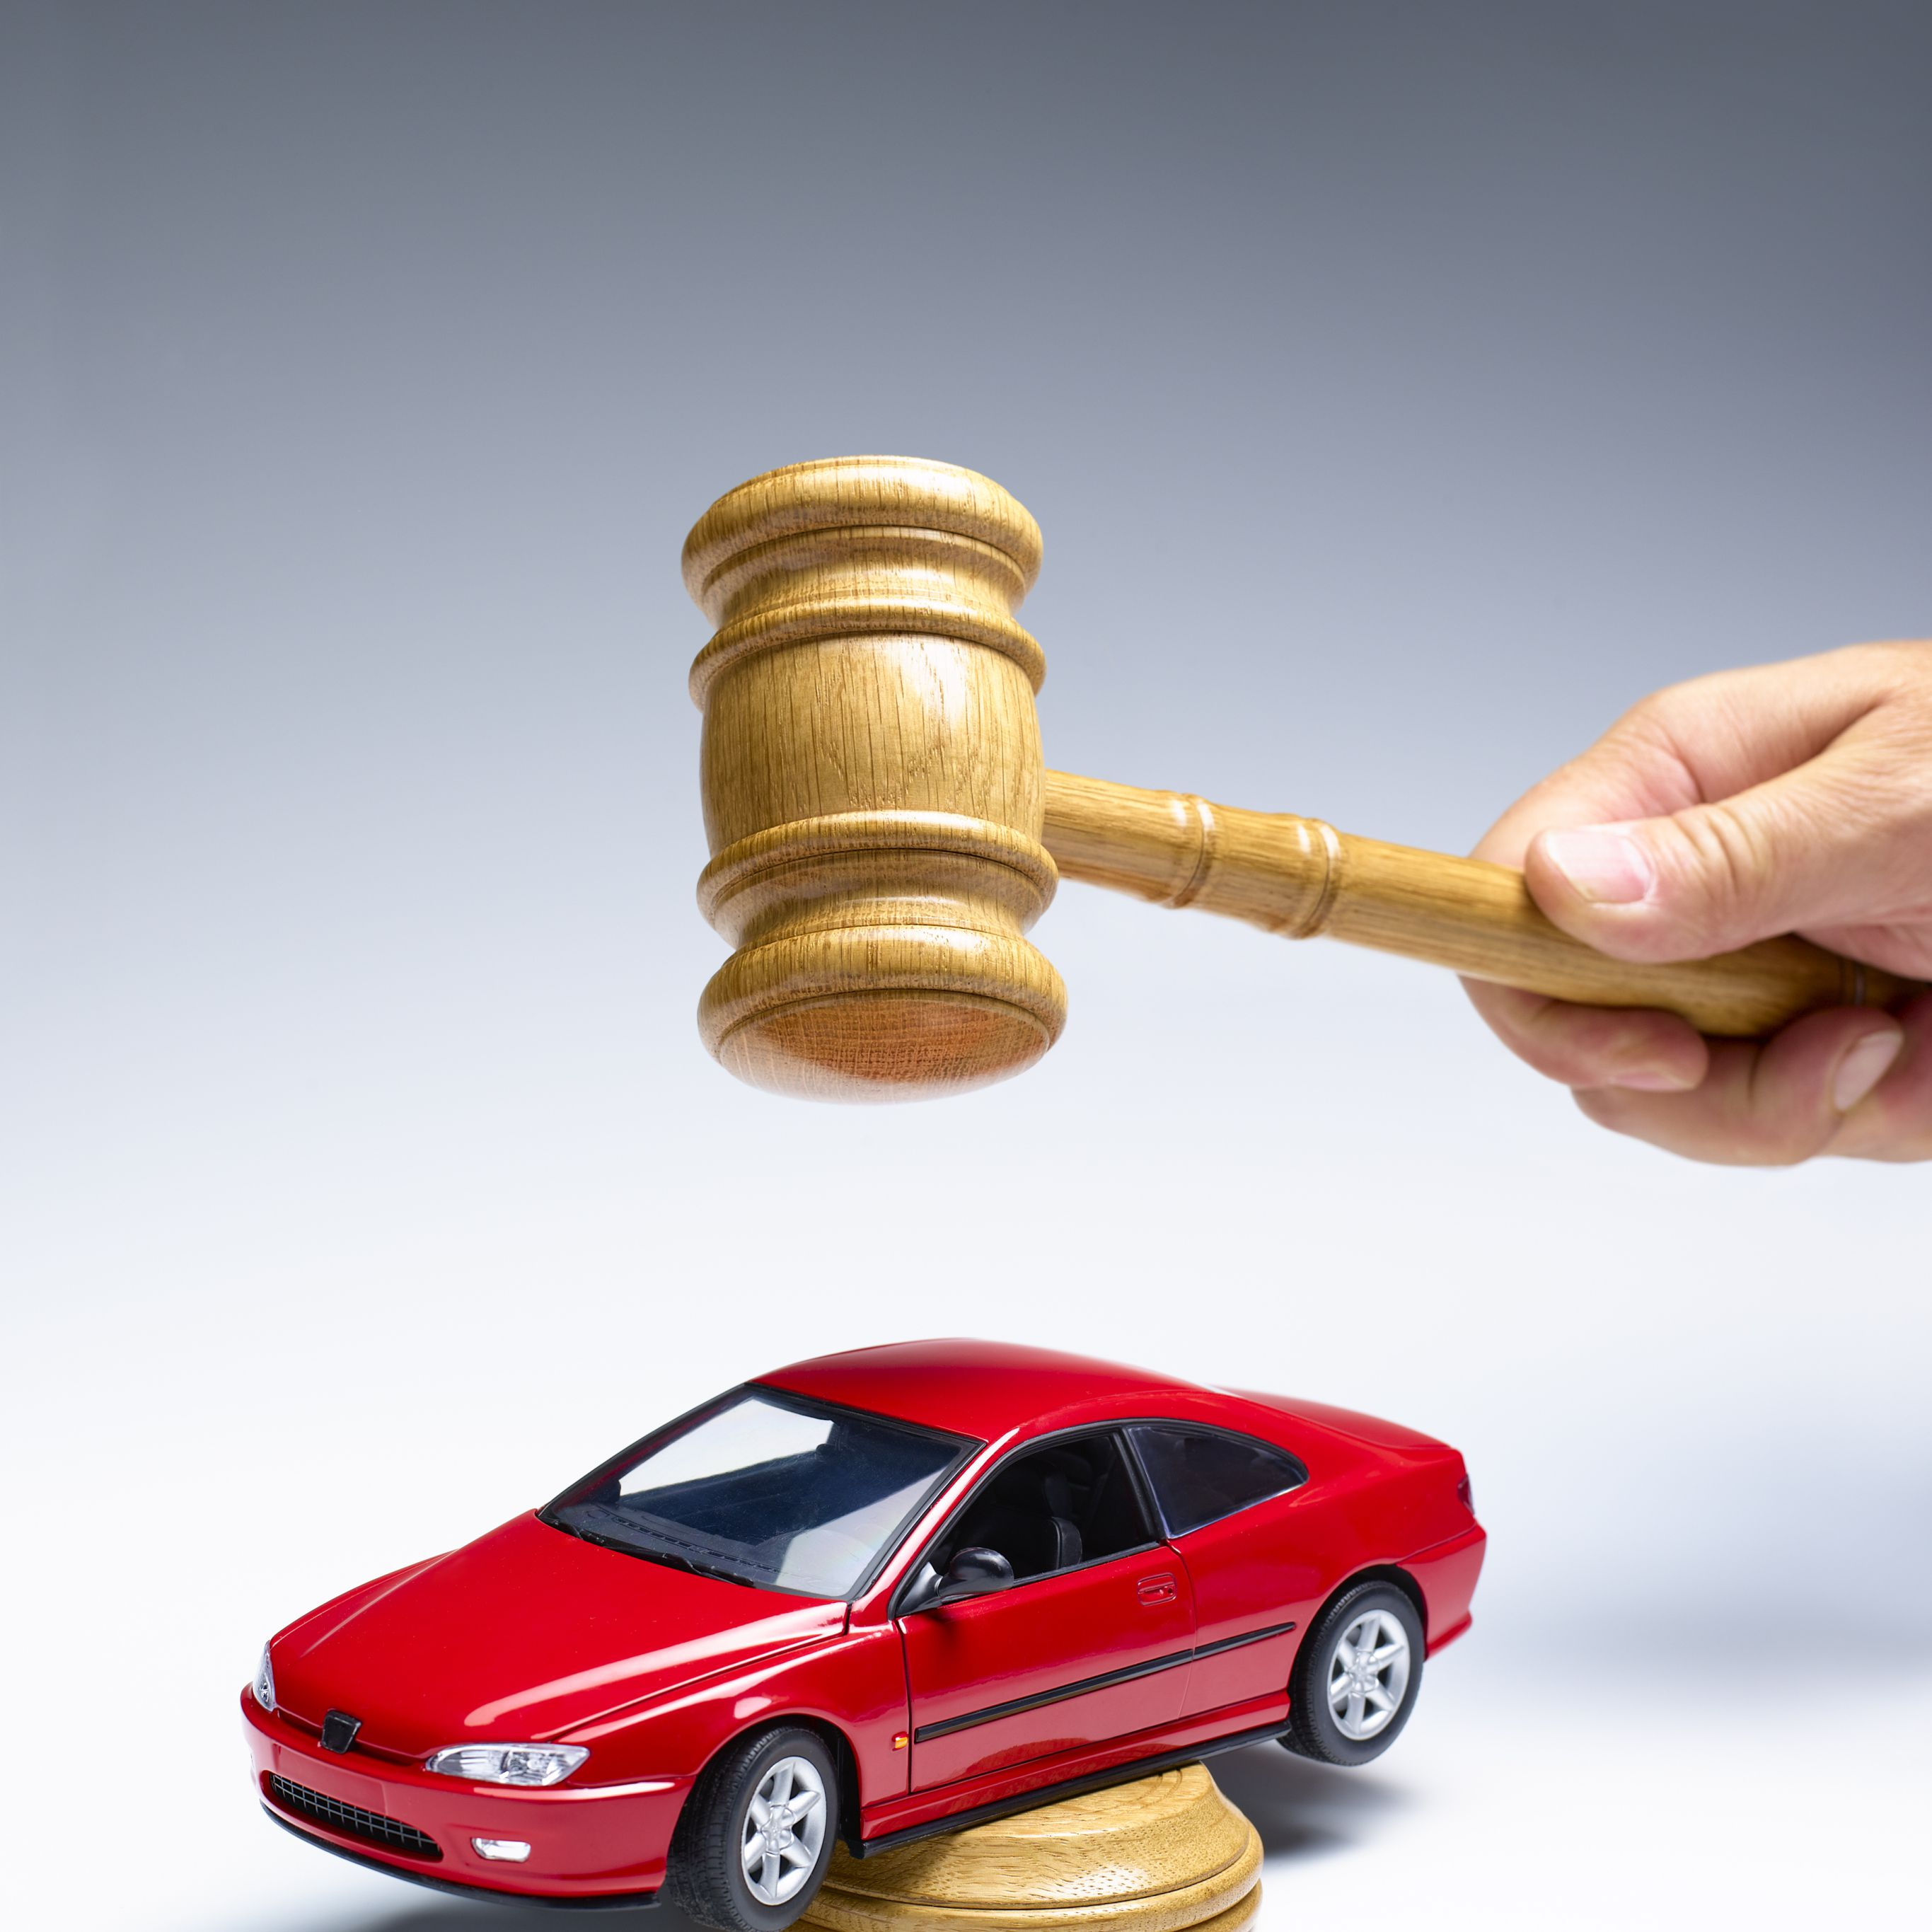 How To Redeem Your Car In A Chapter 7 Bankruptcy